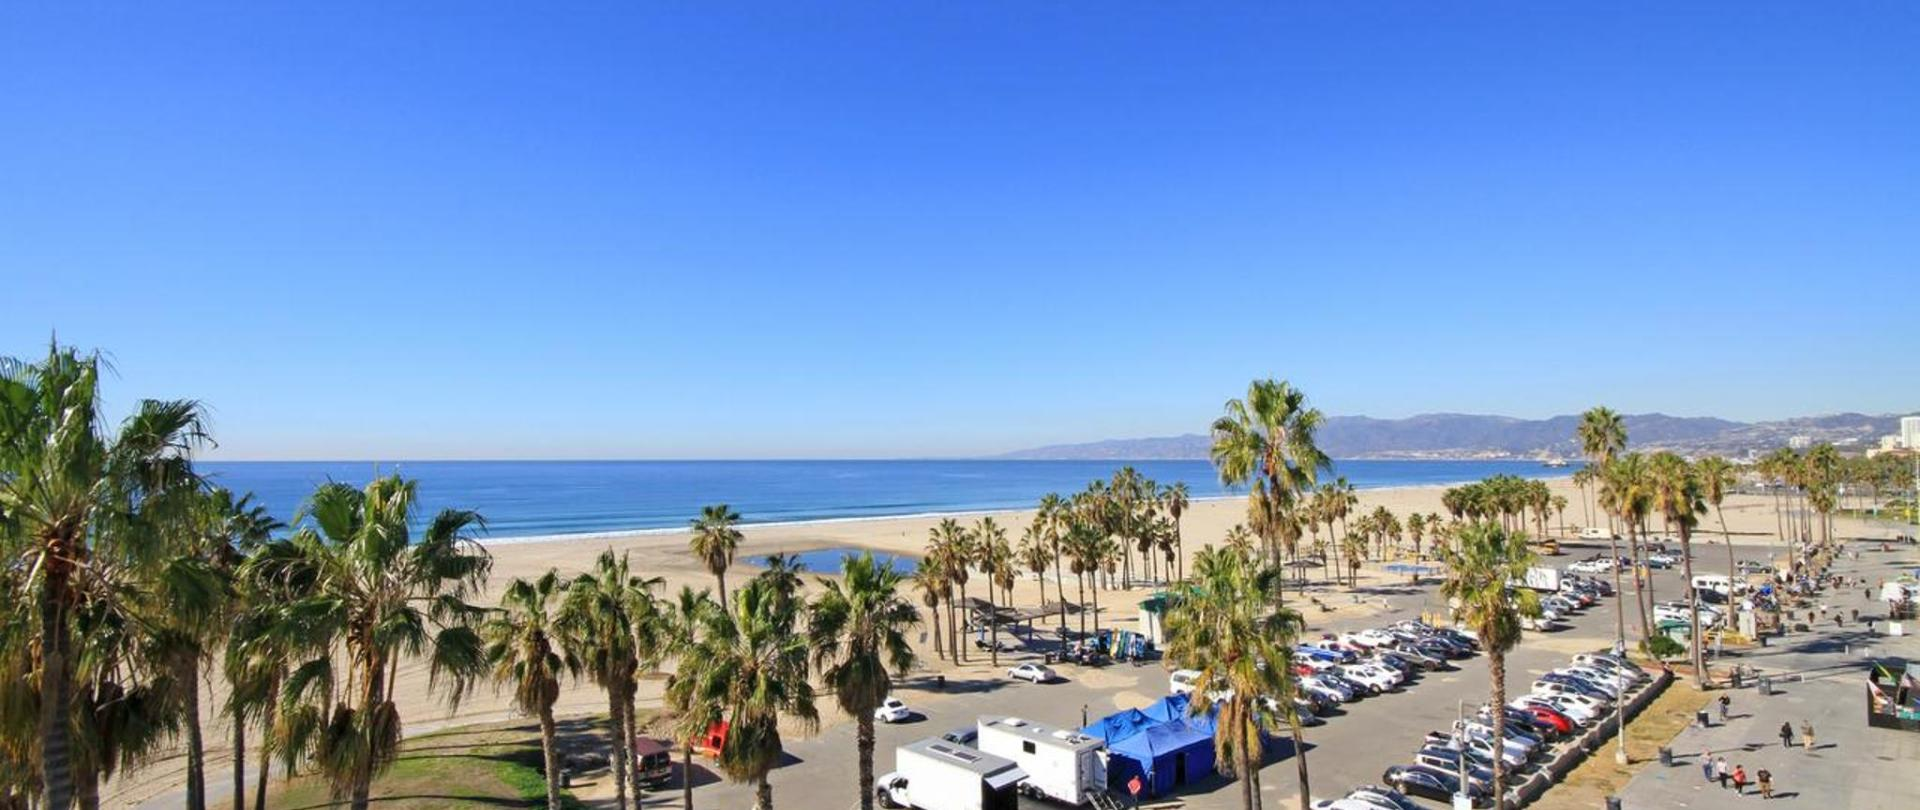 Santa Monica Beach Hotel Deals